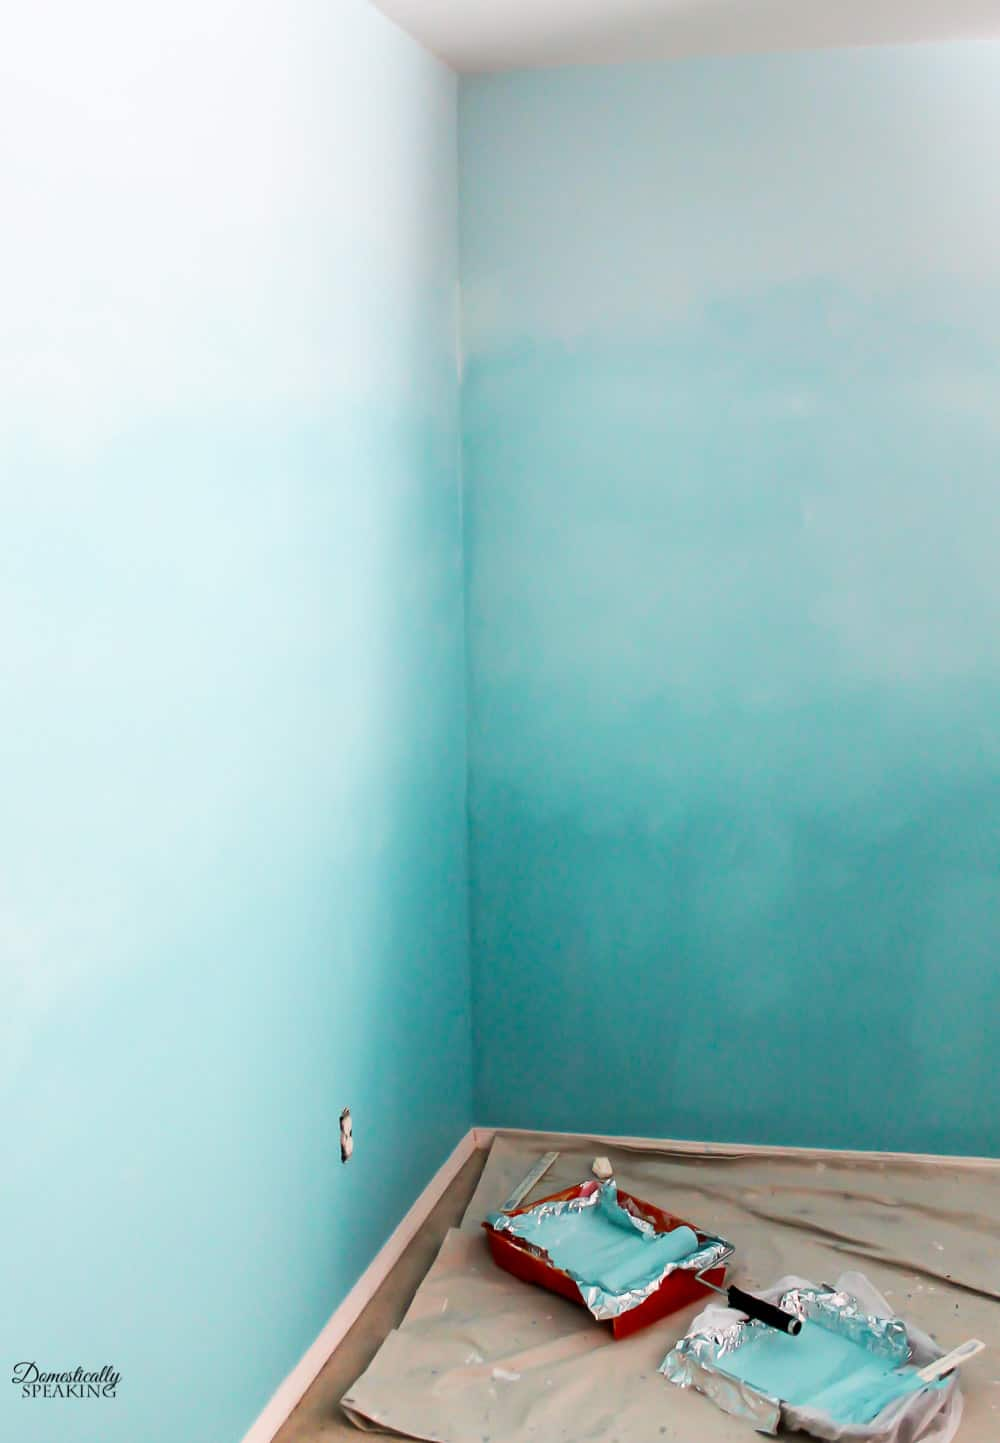 Blending the colors to create an Ombre Bedroom Wall